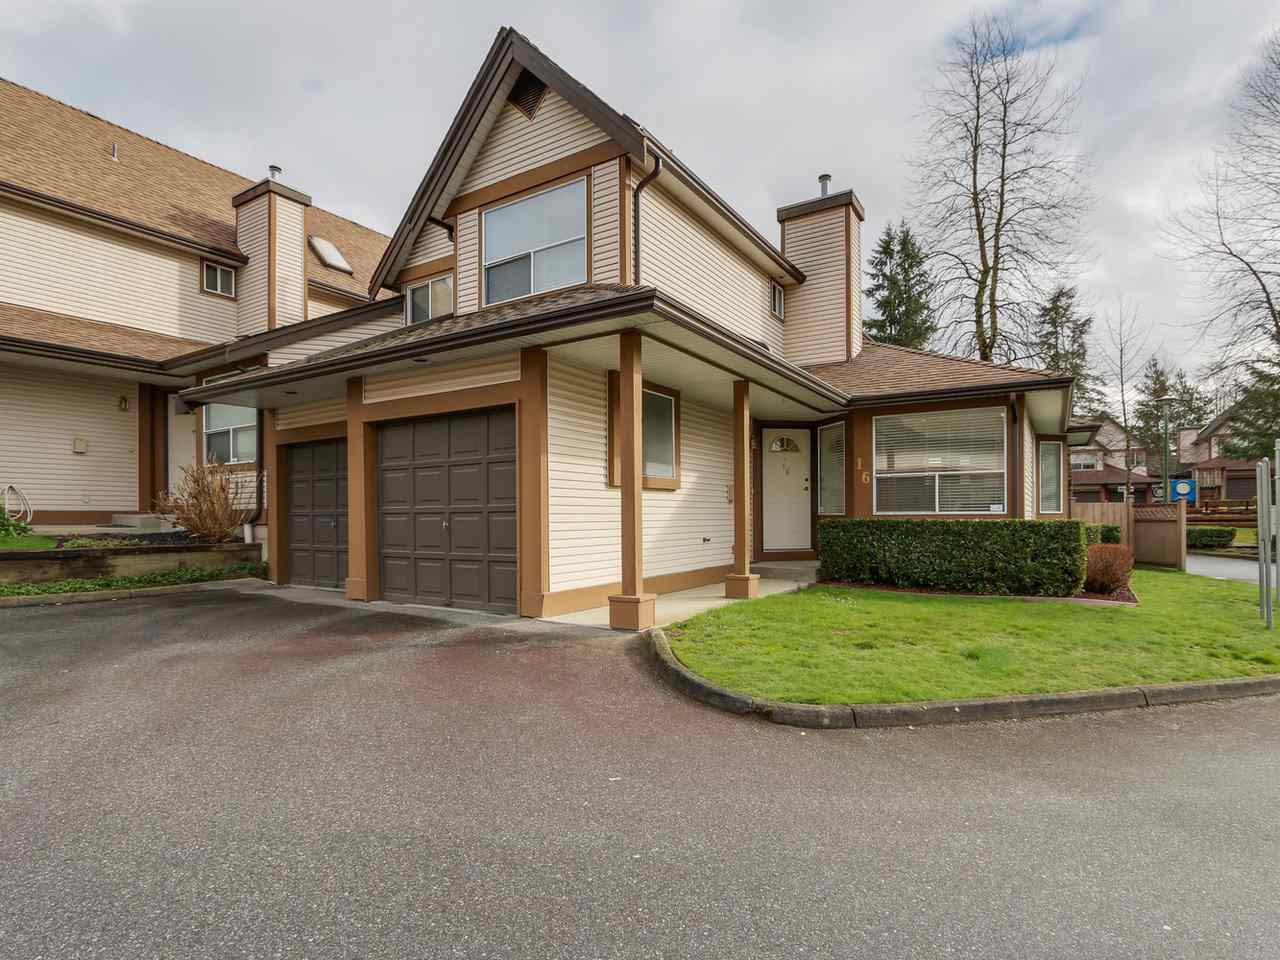 Main Photo: 16 23151 HANEY BYPASS in Maple Ridge: East Central Townhouse for sale : MLS®# R2040781